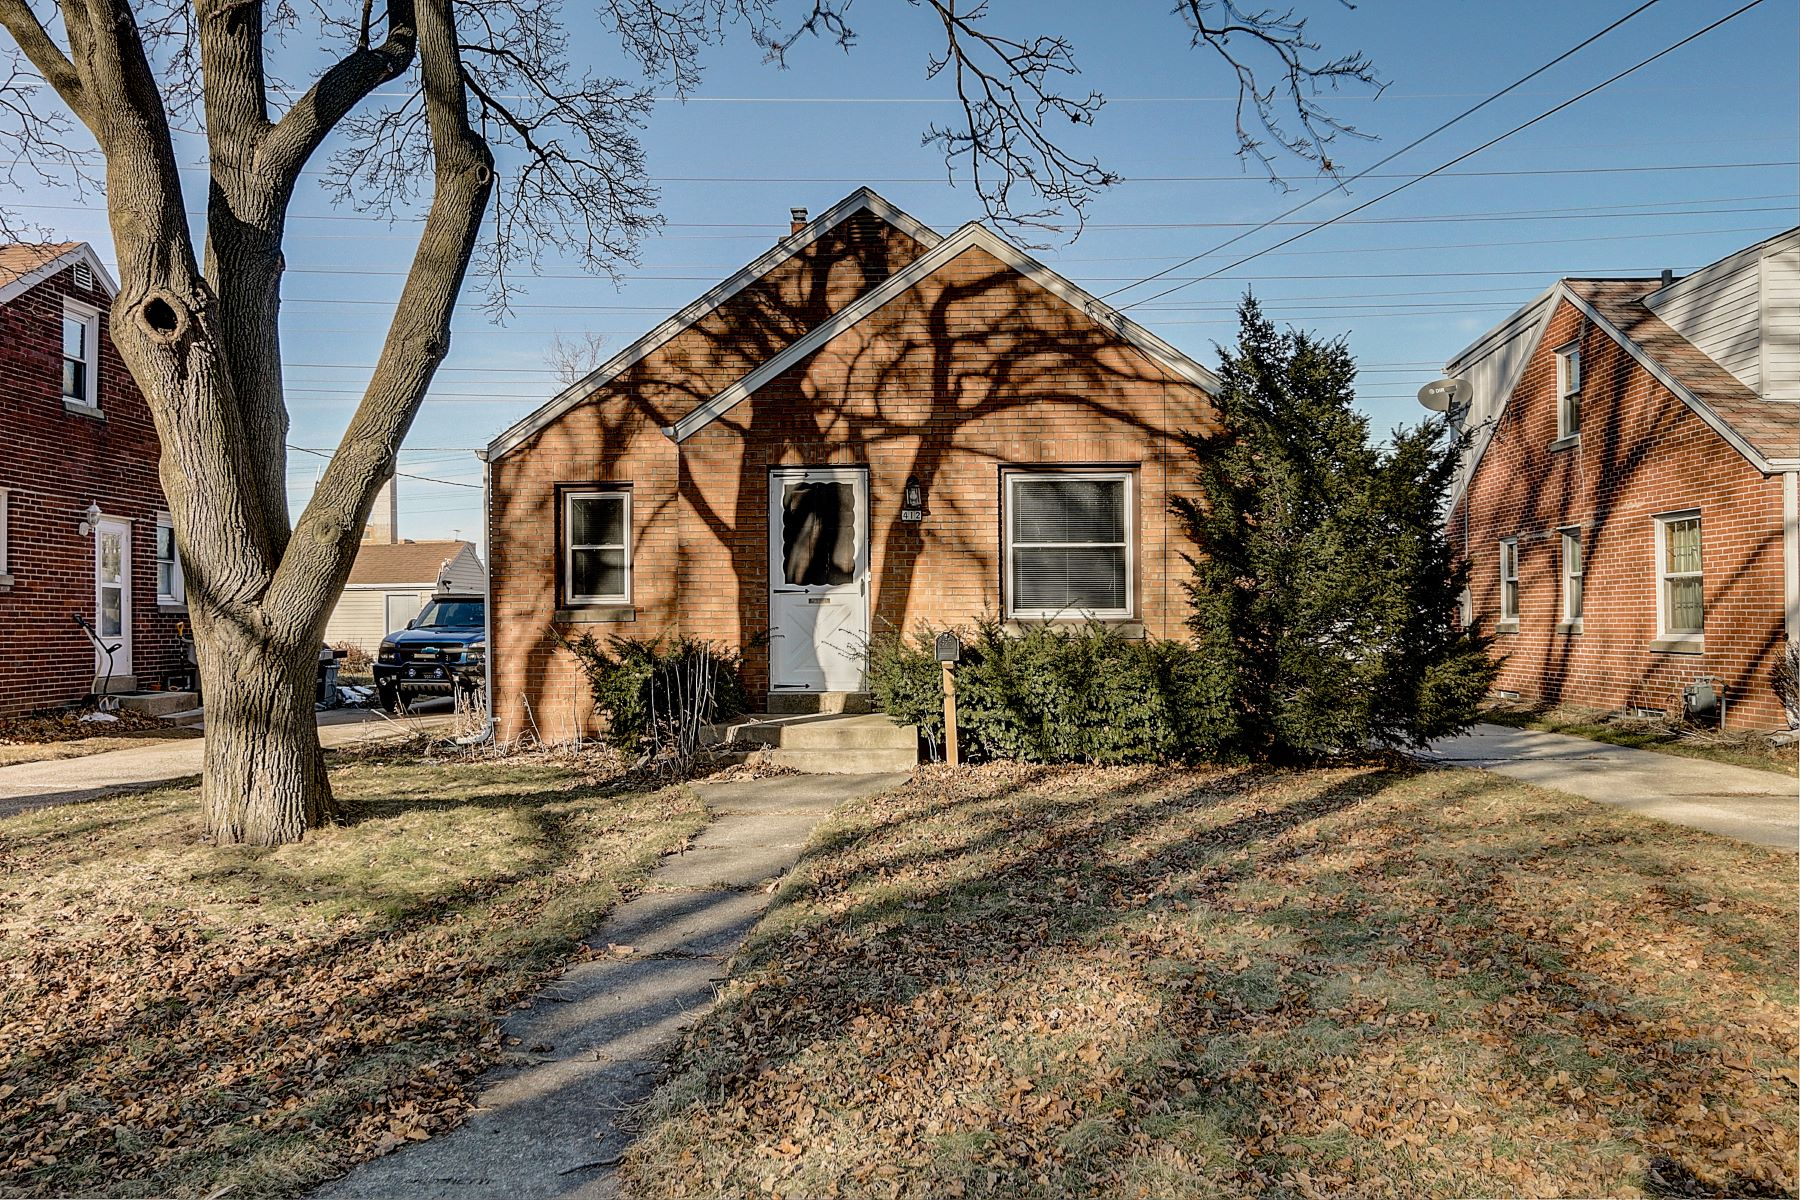 Single Family Homes for Active at 412 E. Waterford Ave. Milwaukee, Wisconsin 53207 United States